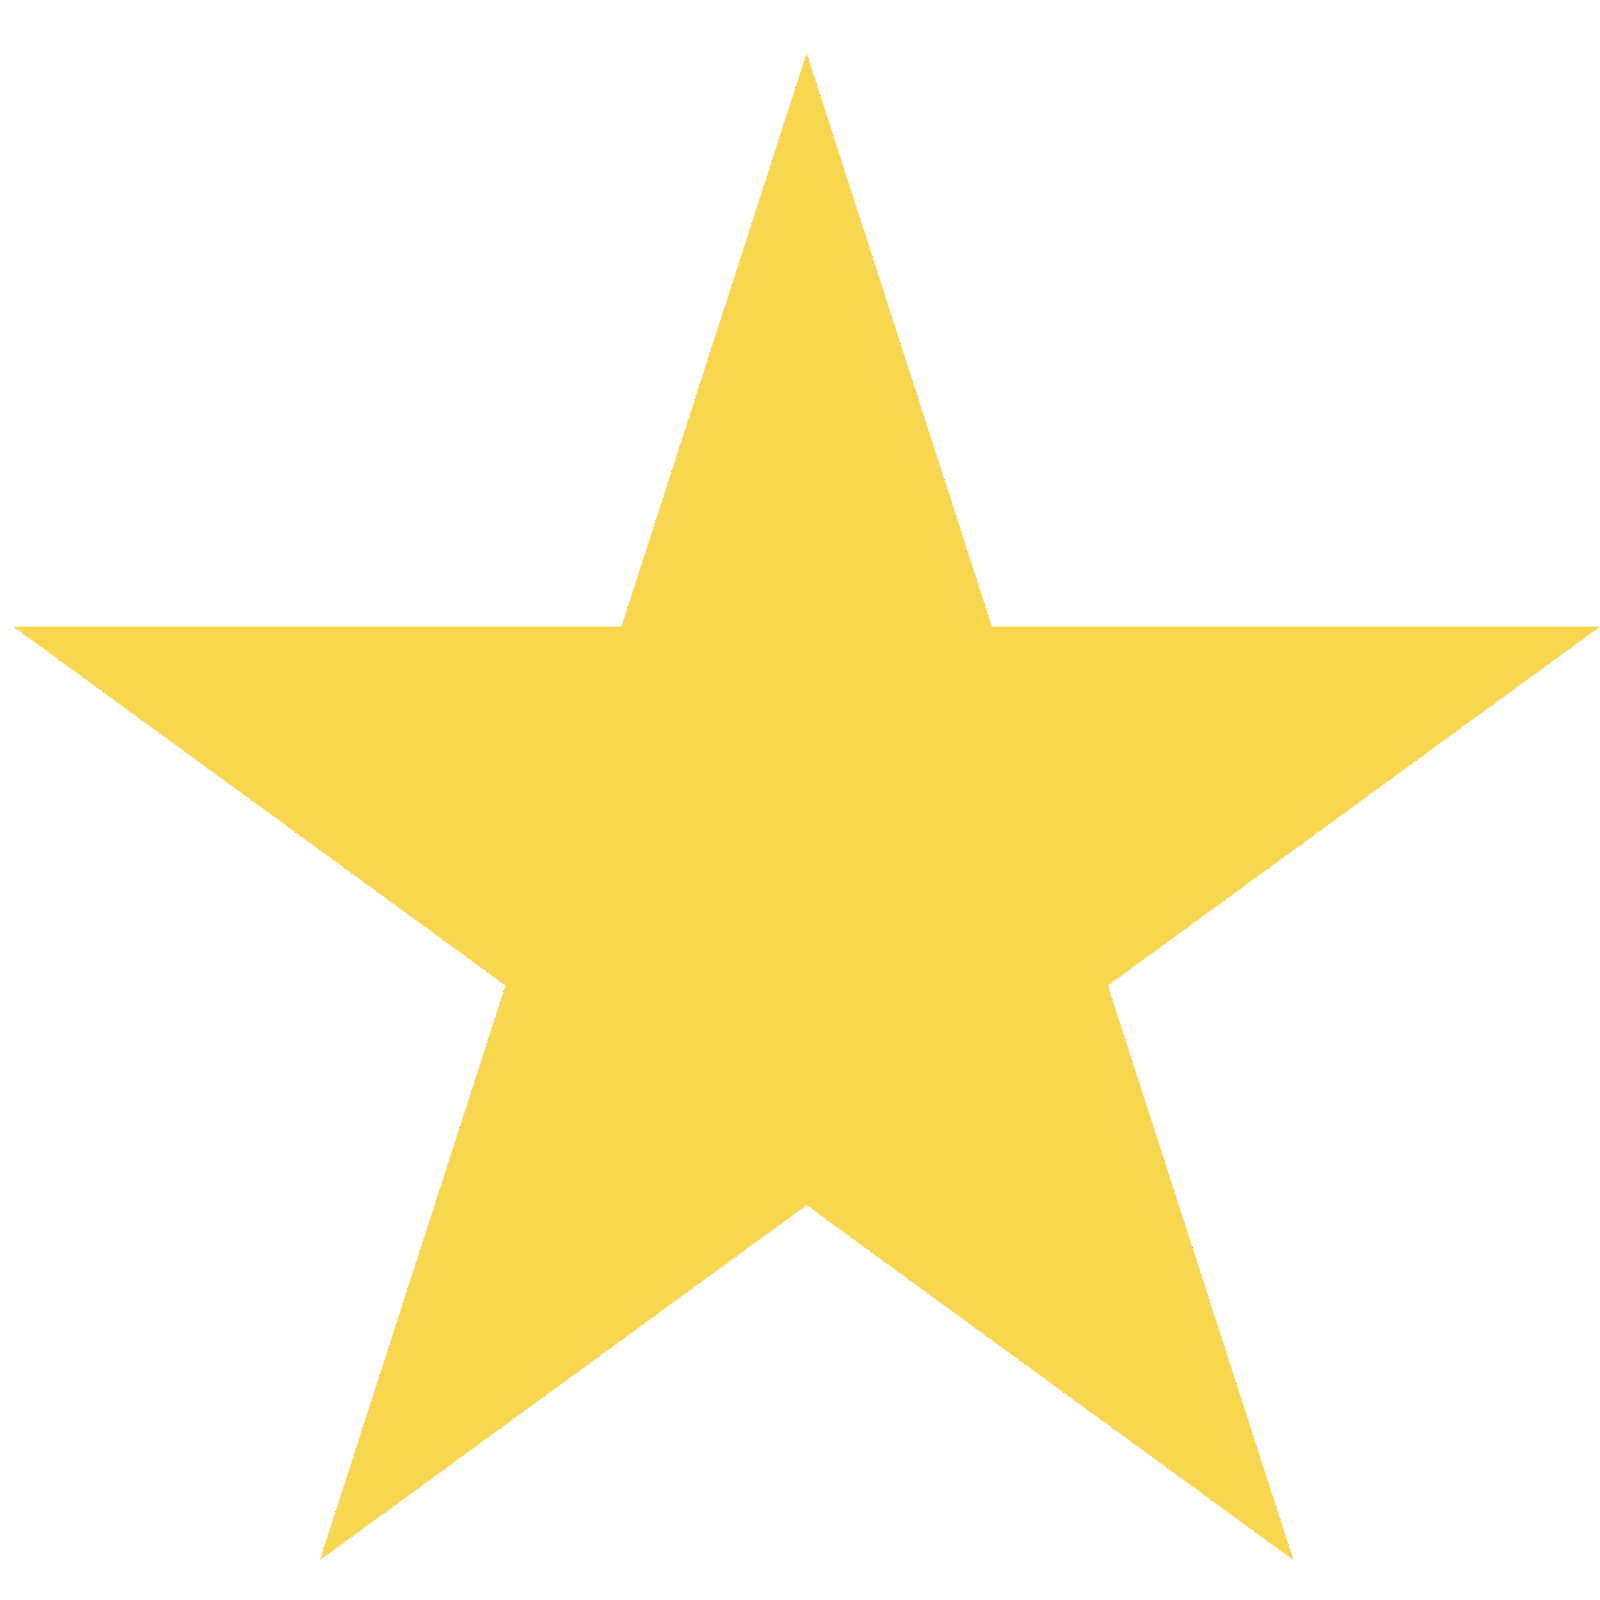 File:Gold Star.svg - Wikimedia Commons